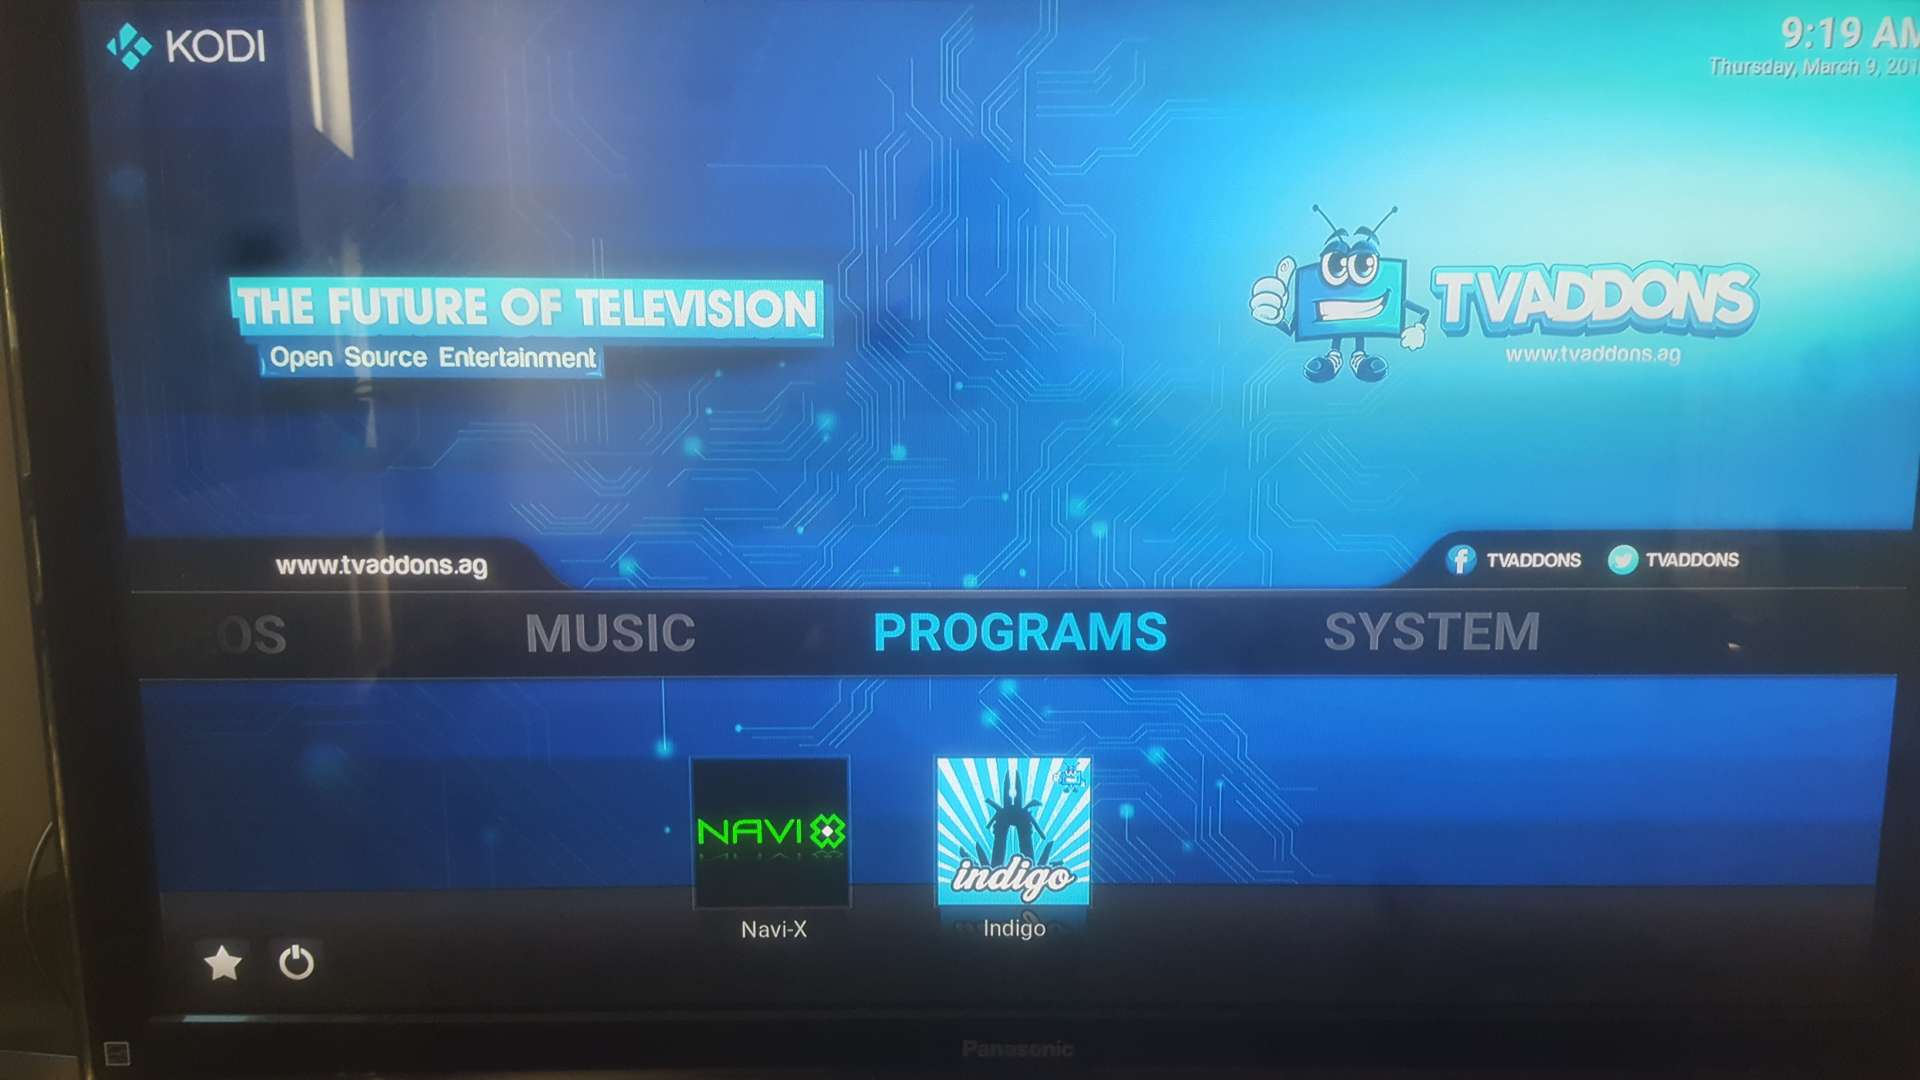 how to add program addons in kodi